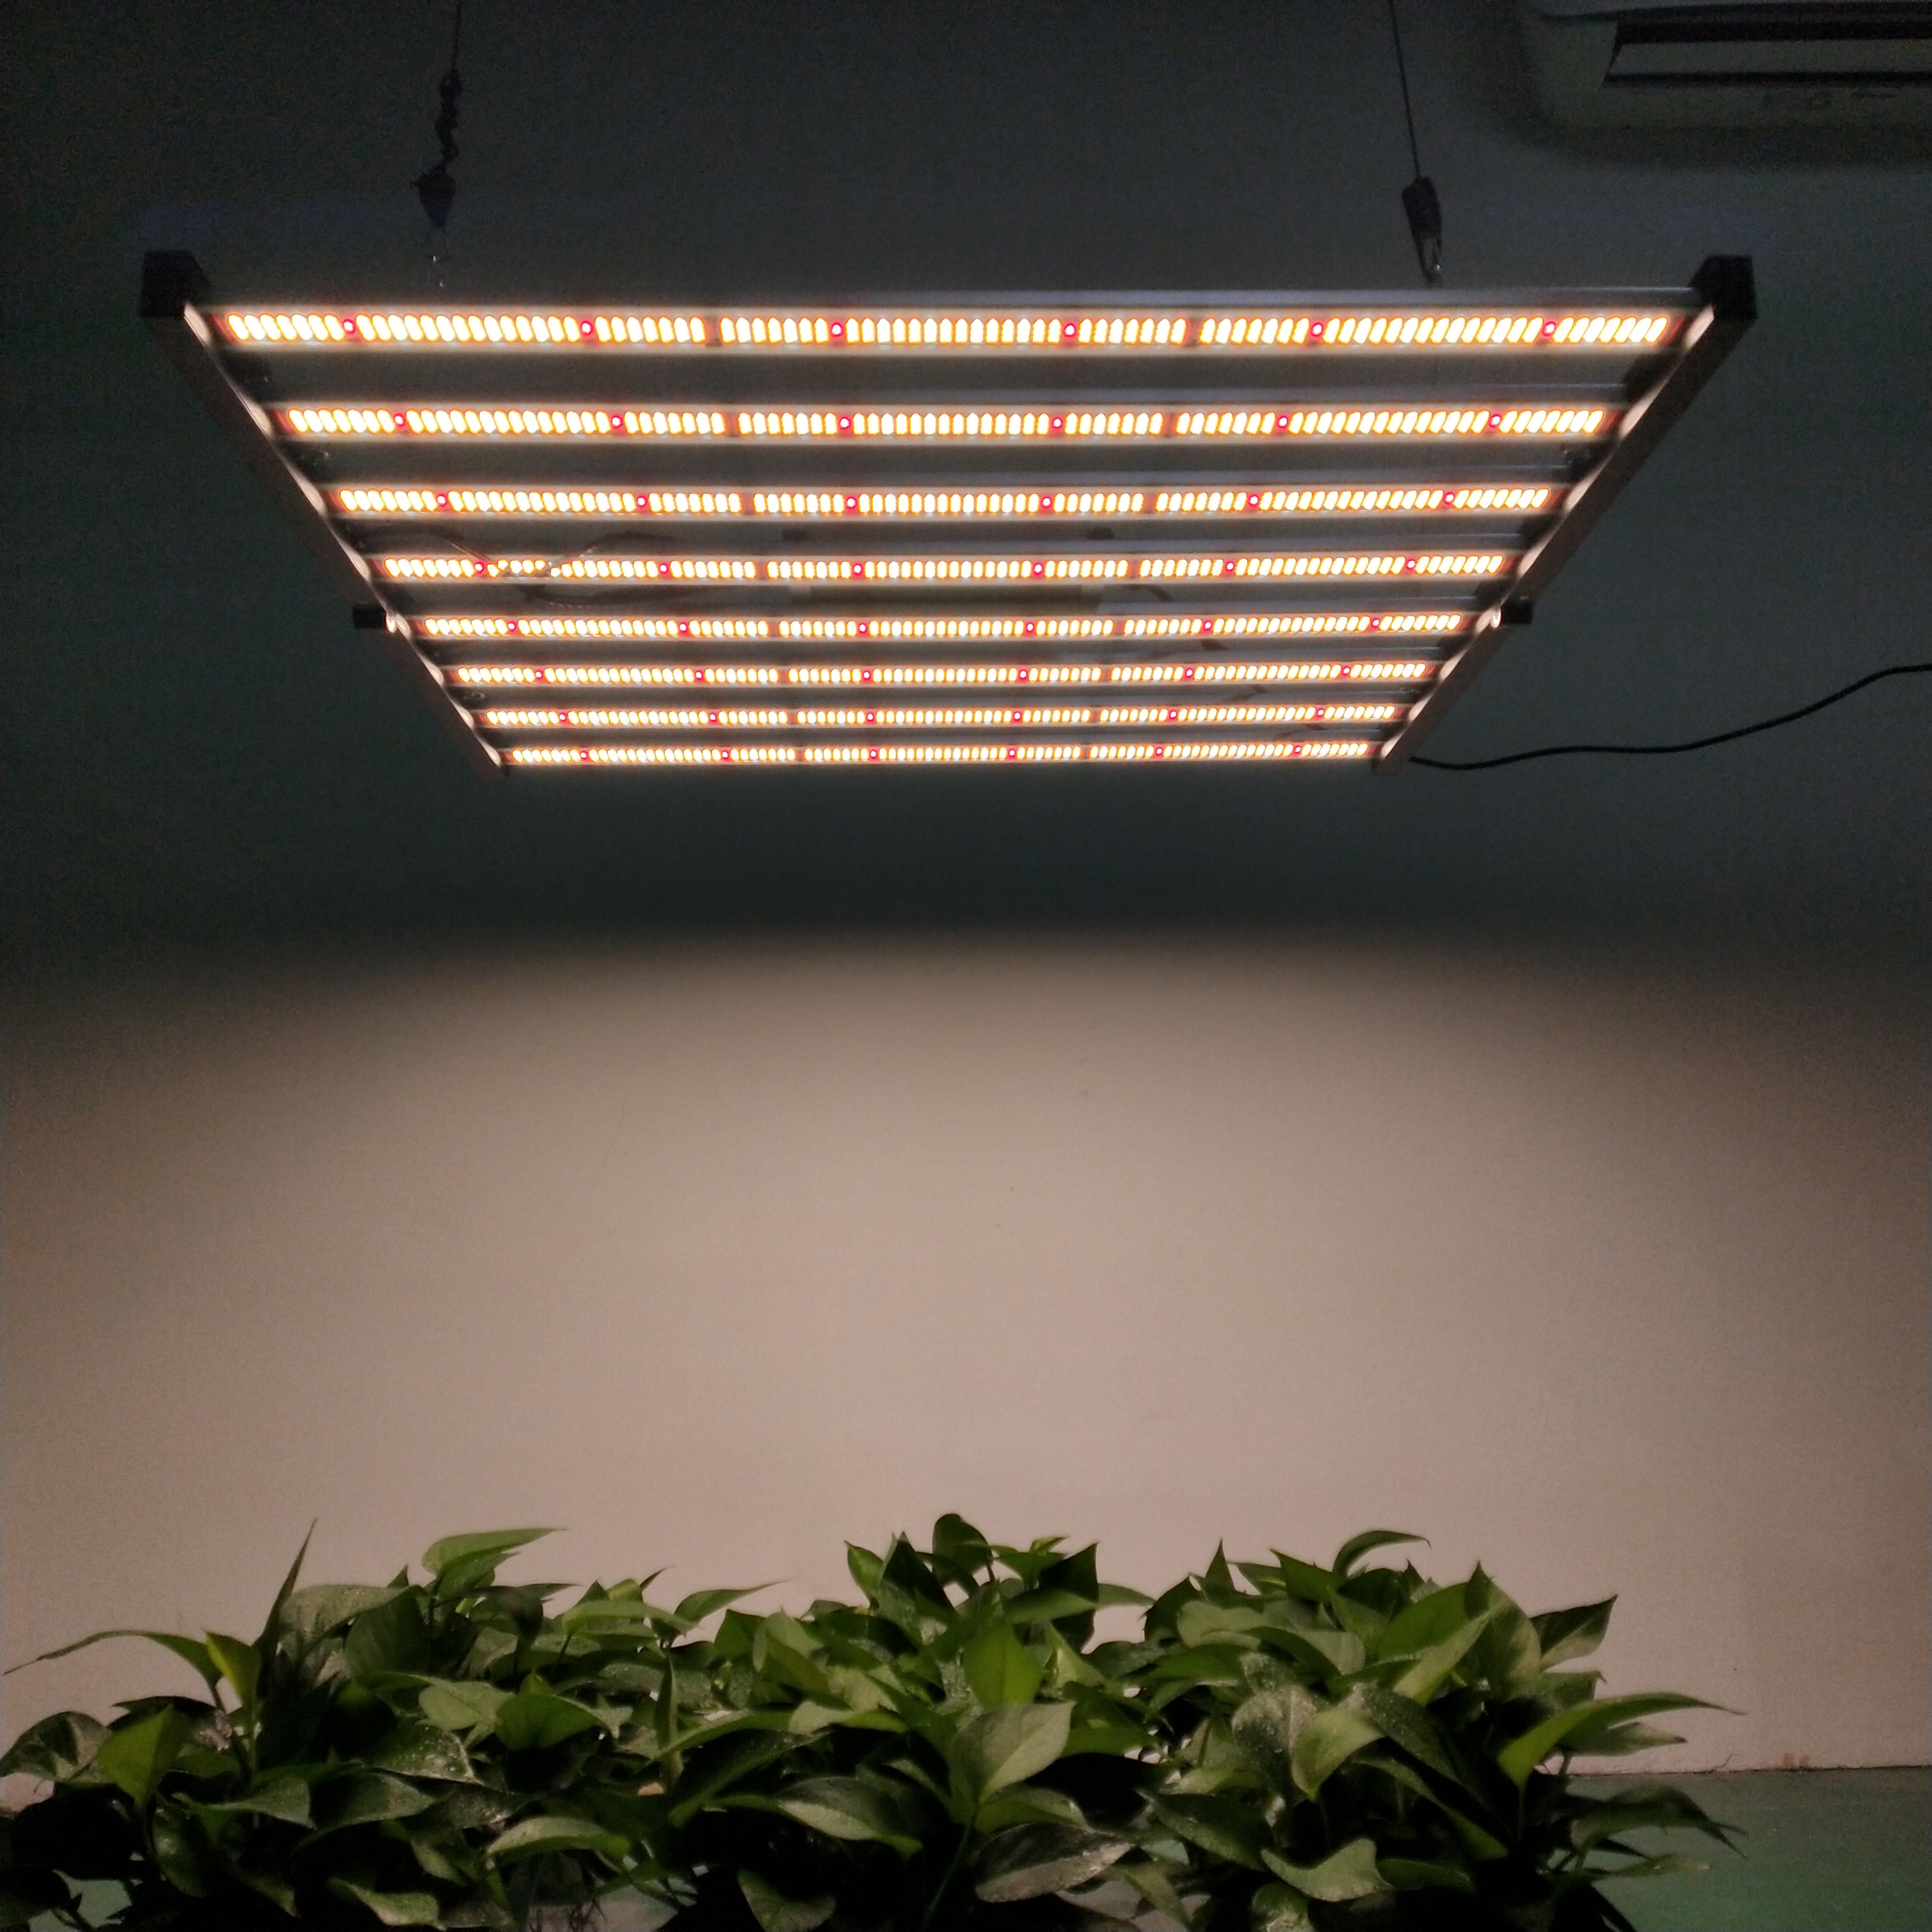 Led Grow Bar Lm301B